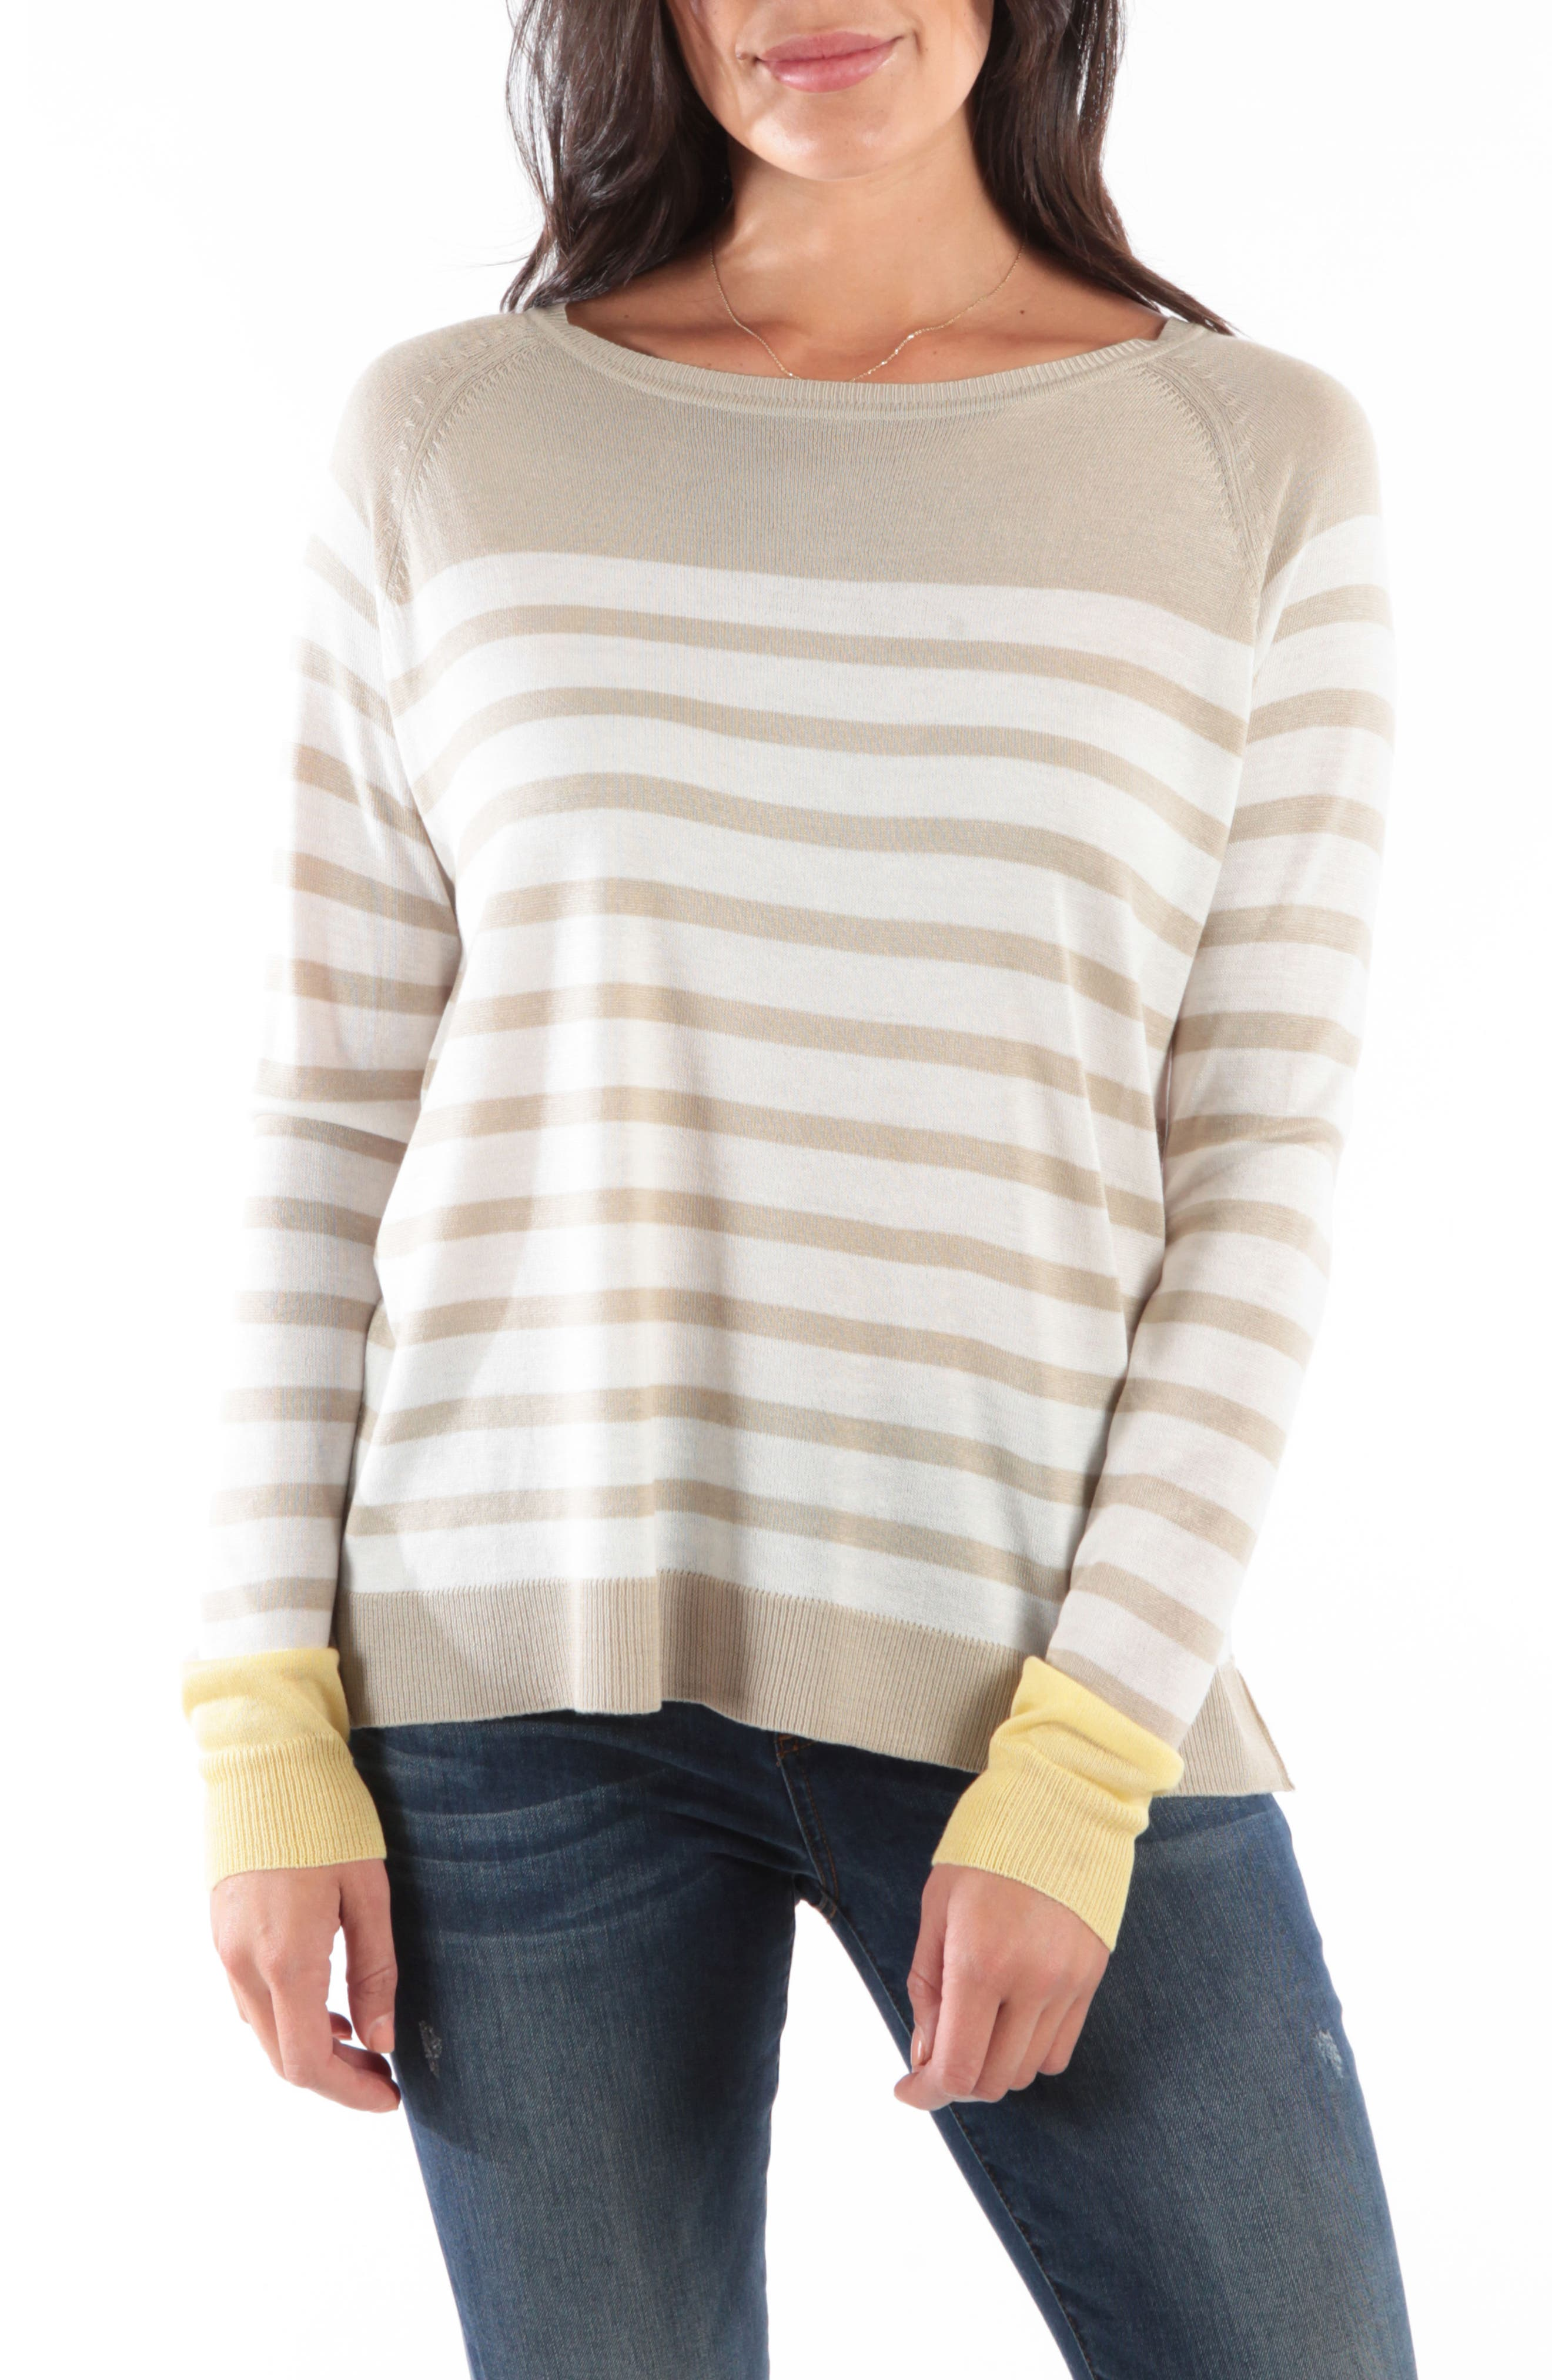 KUT FROM THE KLOTH,                             Bianka Stripe Sweater,                             Main thumbnail 1, color,                             OATMEAL/ OFF WHITE